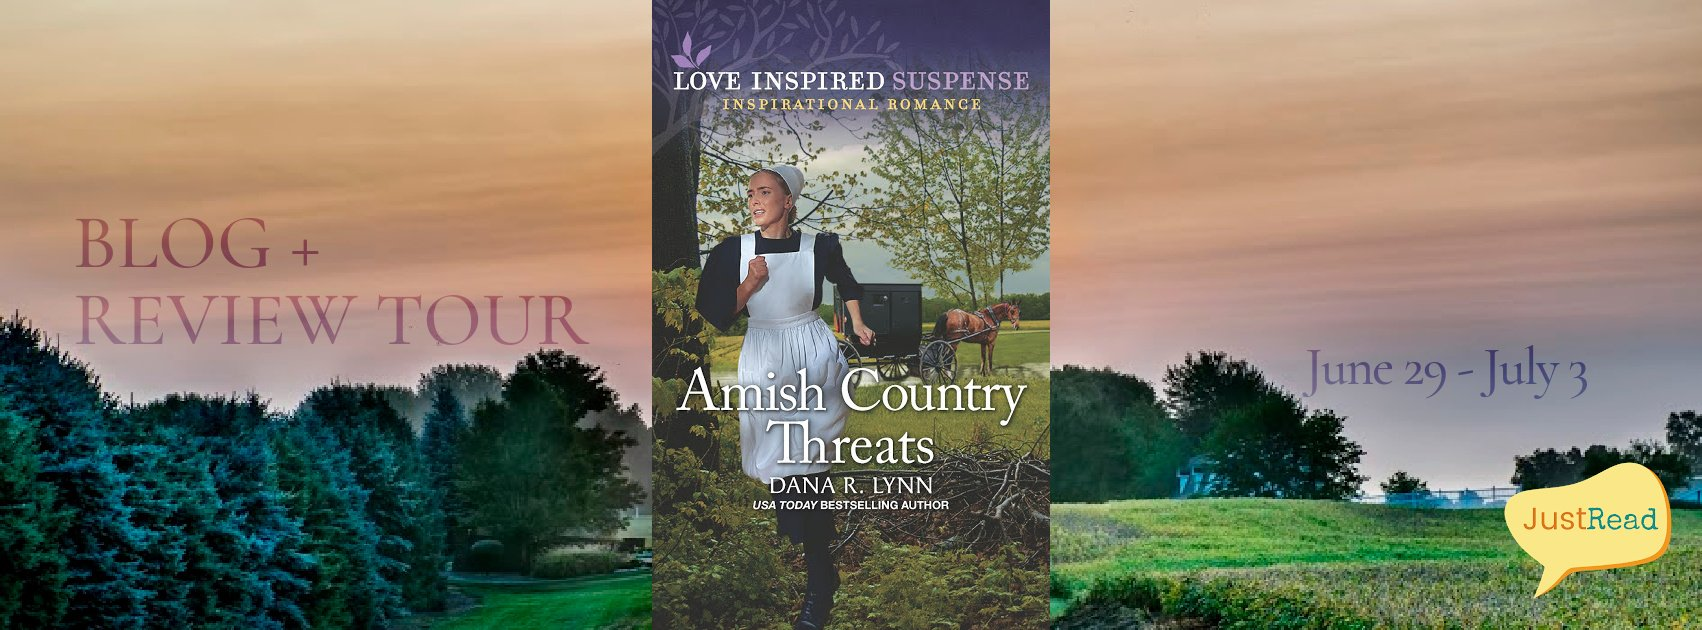 Amish Country Threats JustRead Blog + Review Tour